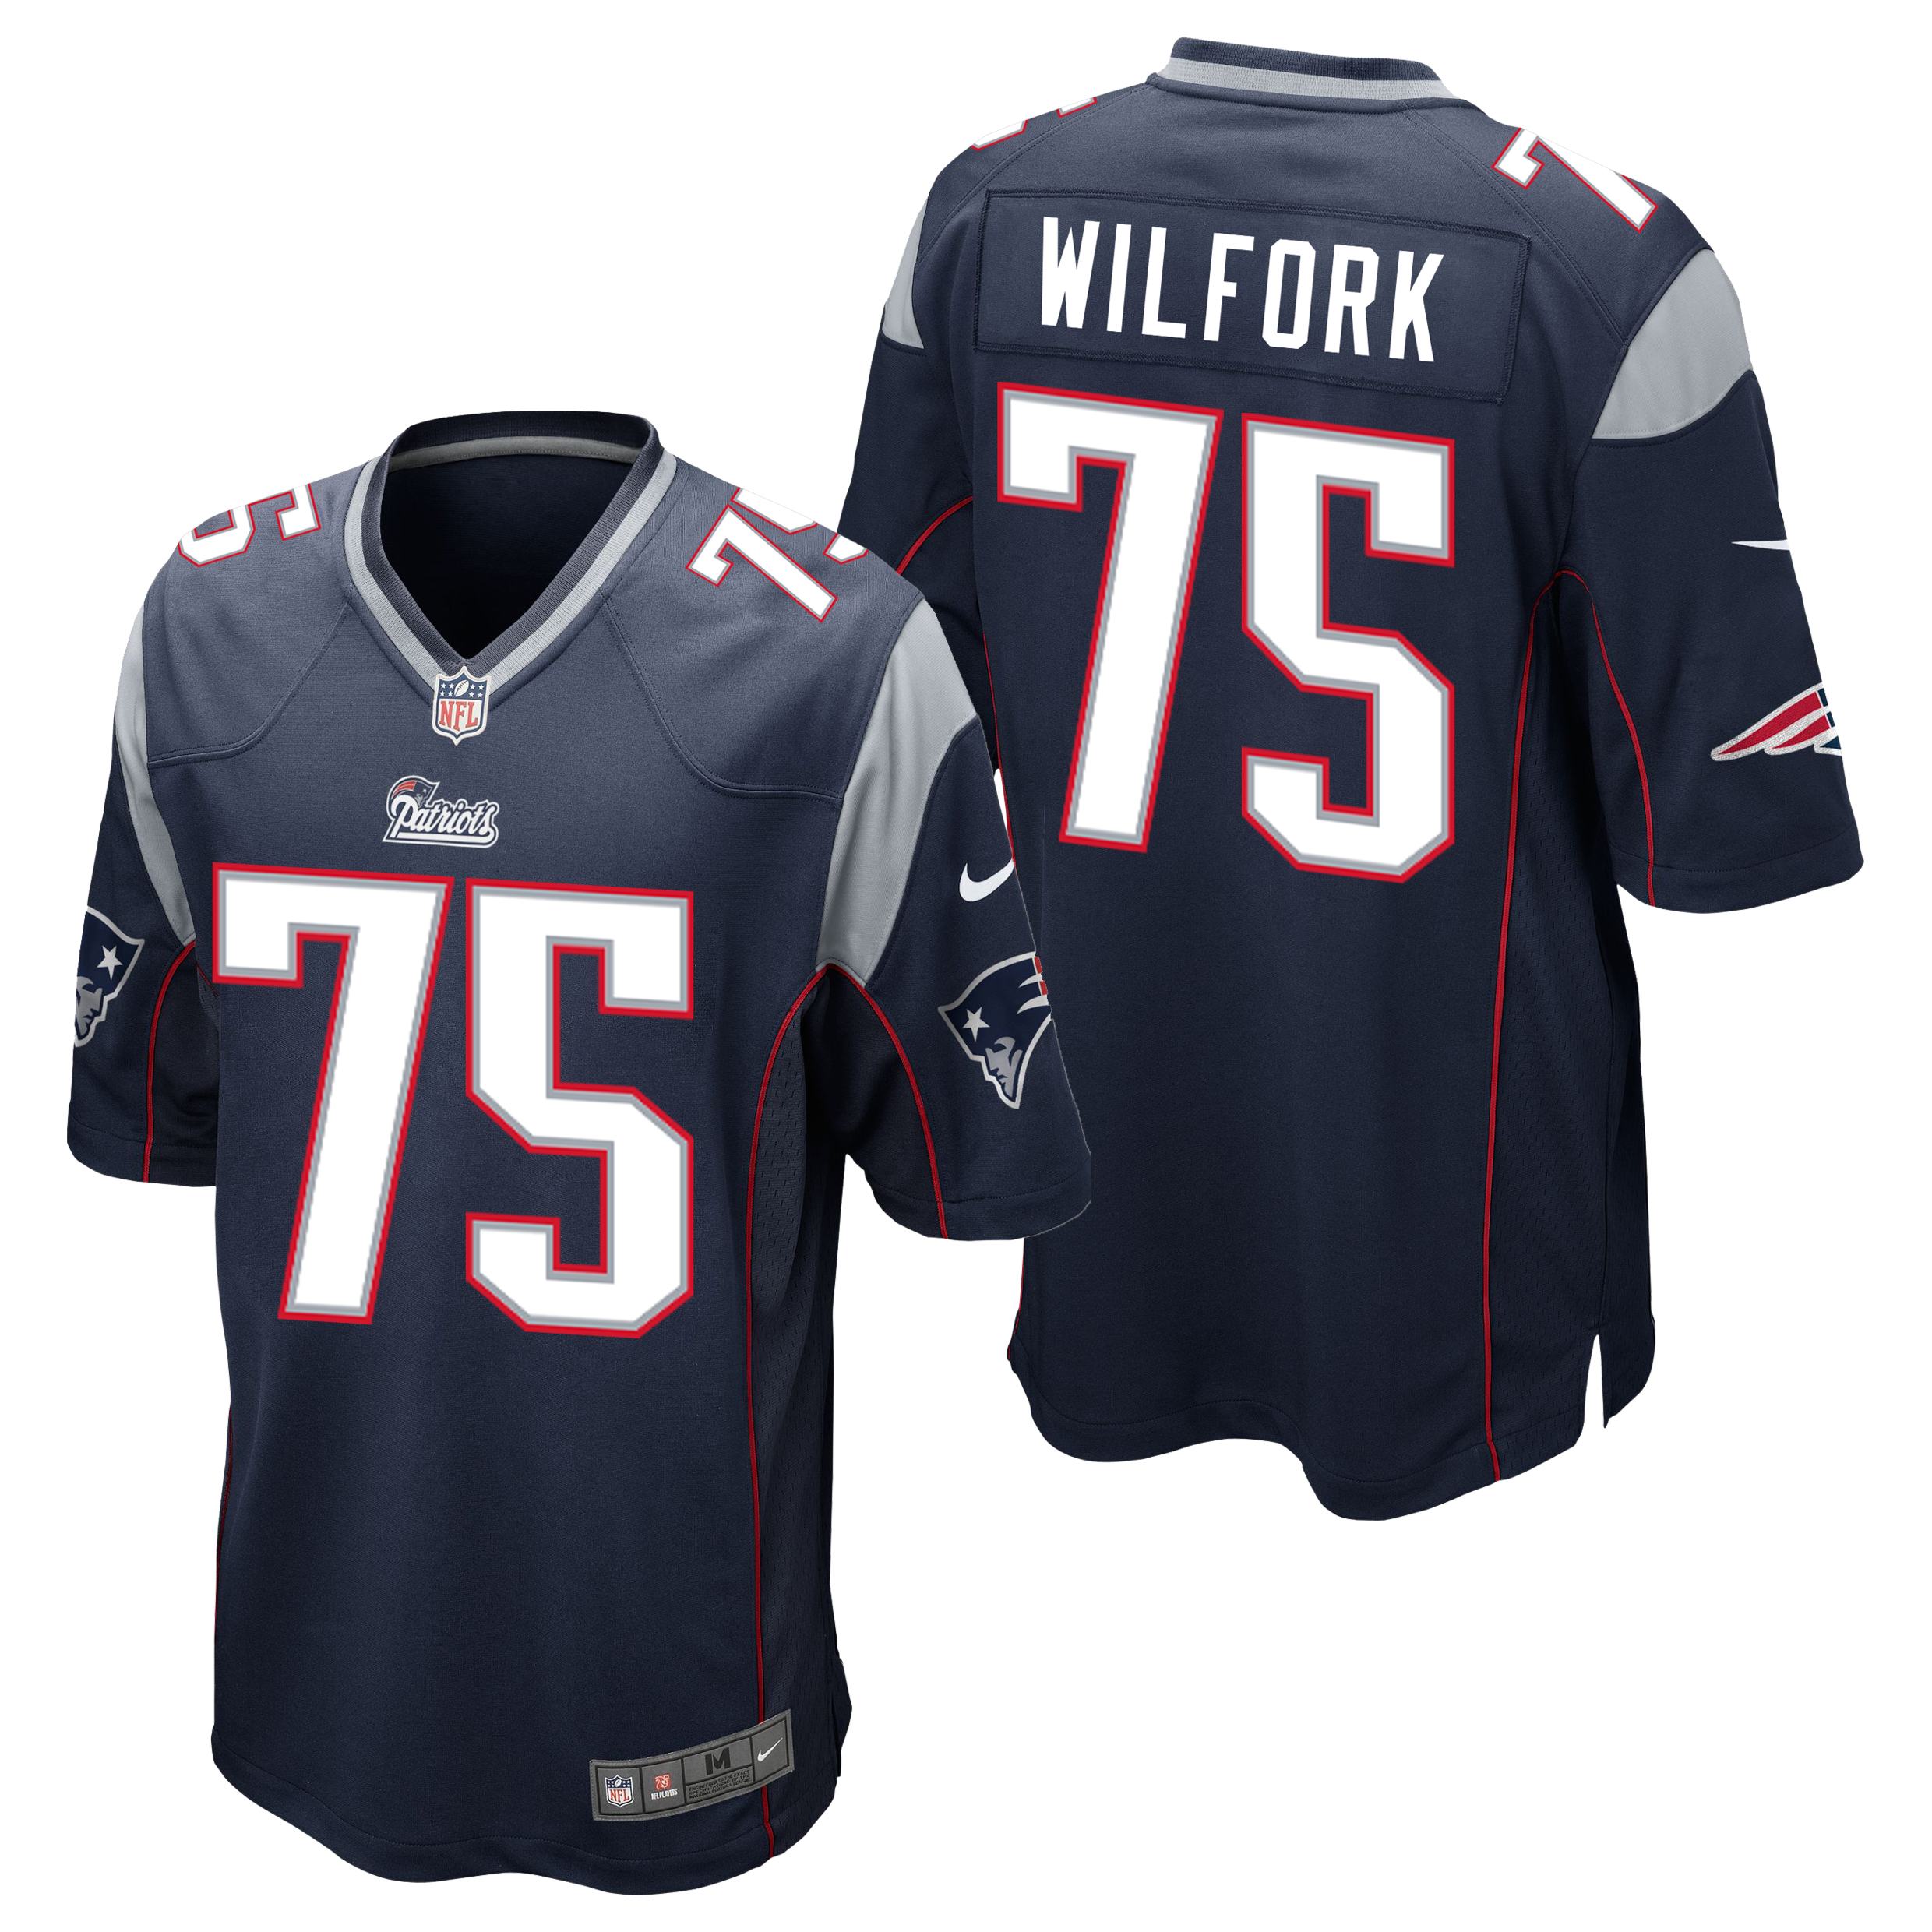 New England Patriots Home Game Jersey - Vince Wilfork